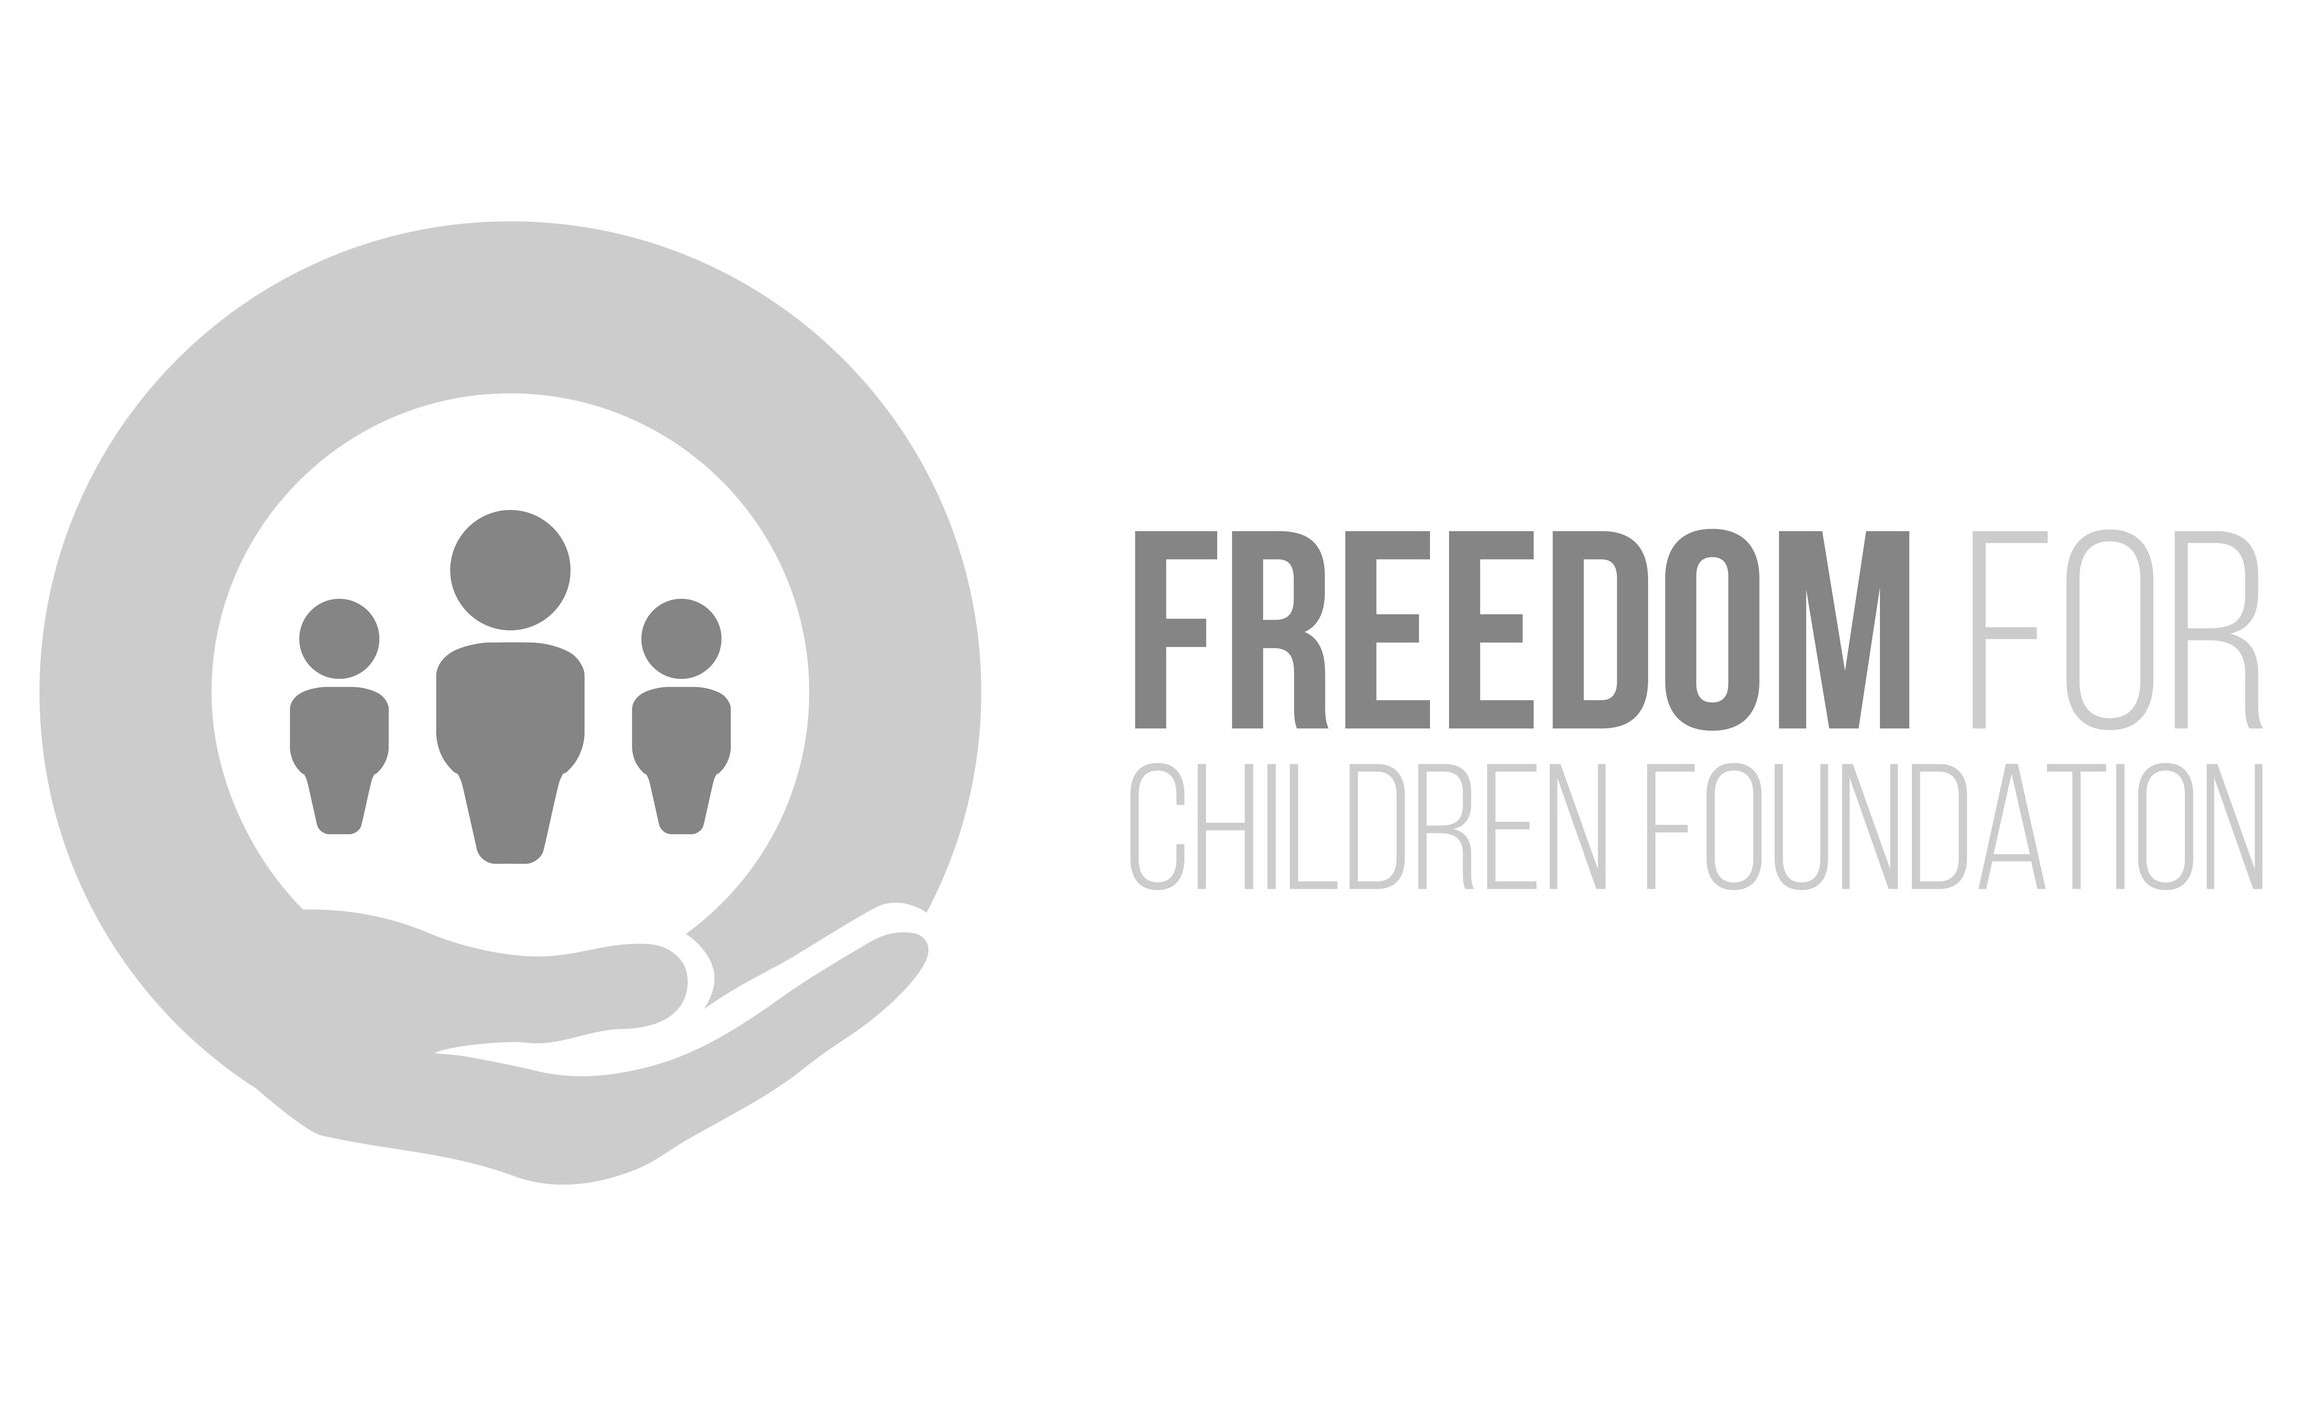 Freedom for Children Foundation